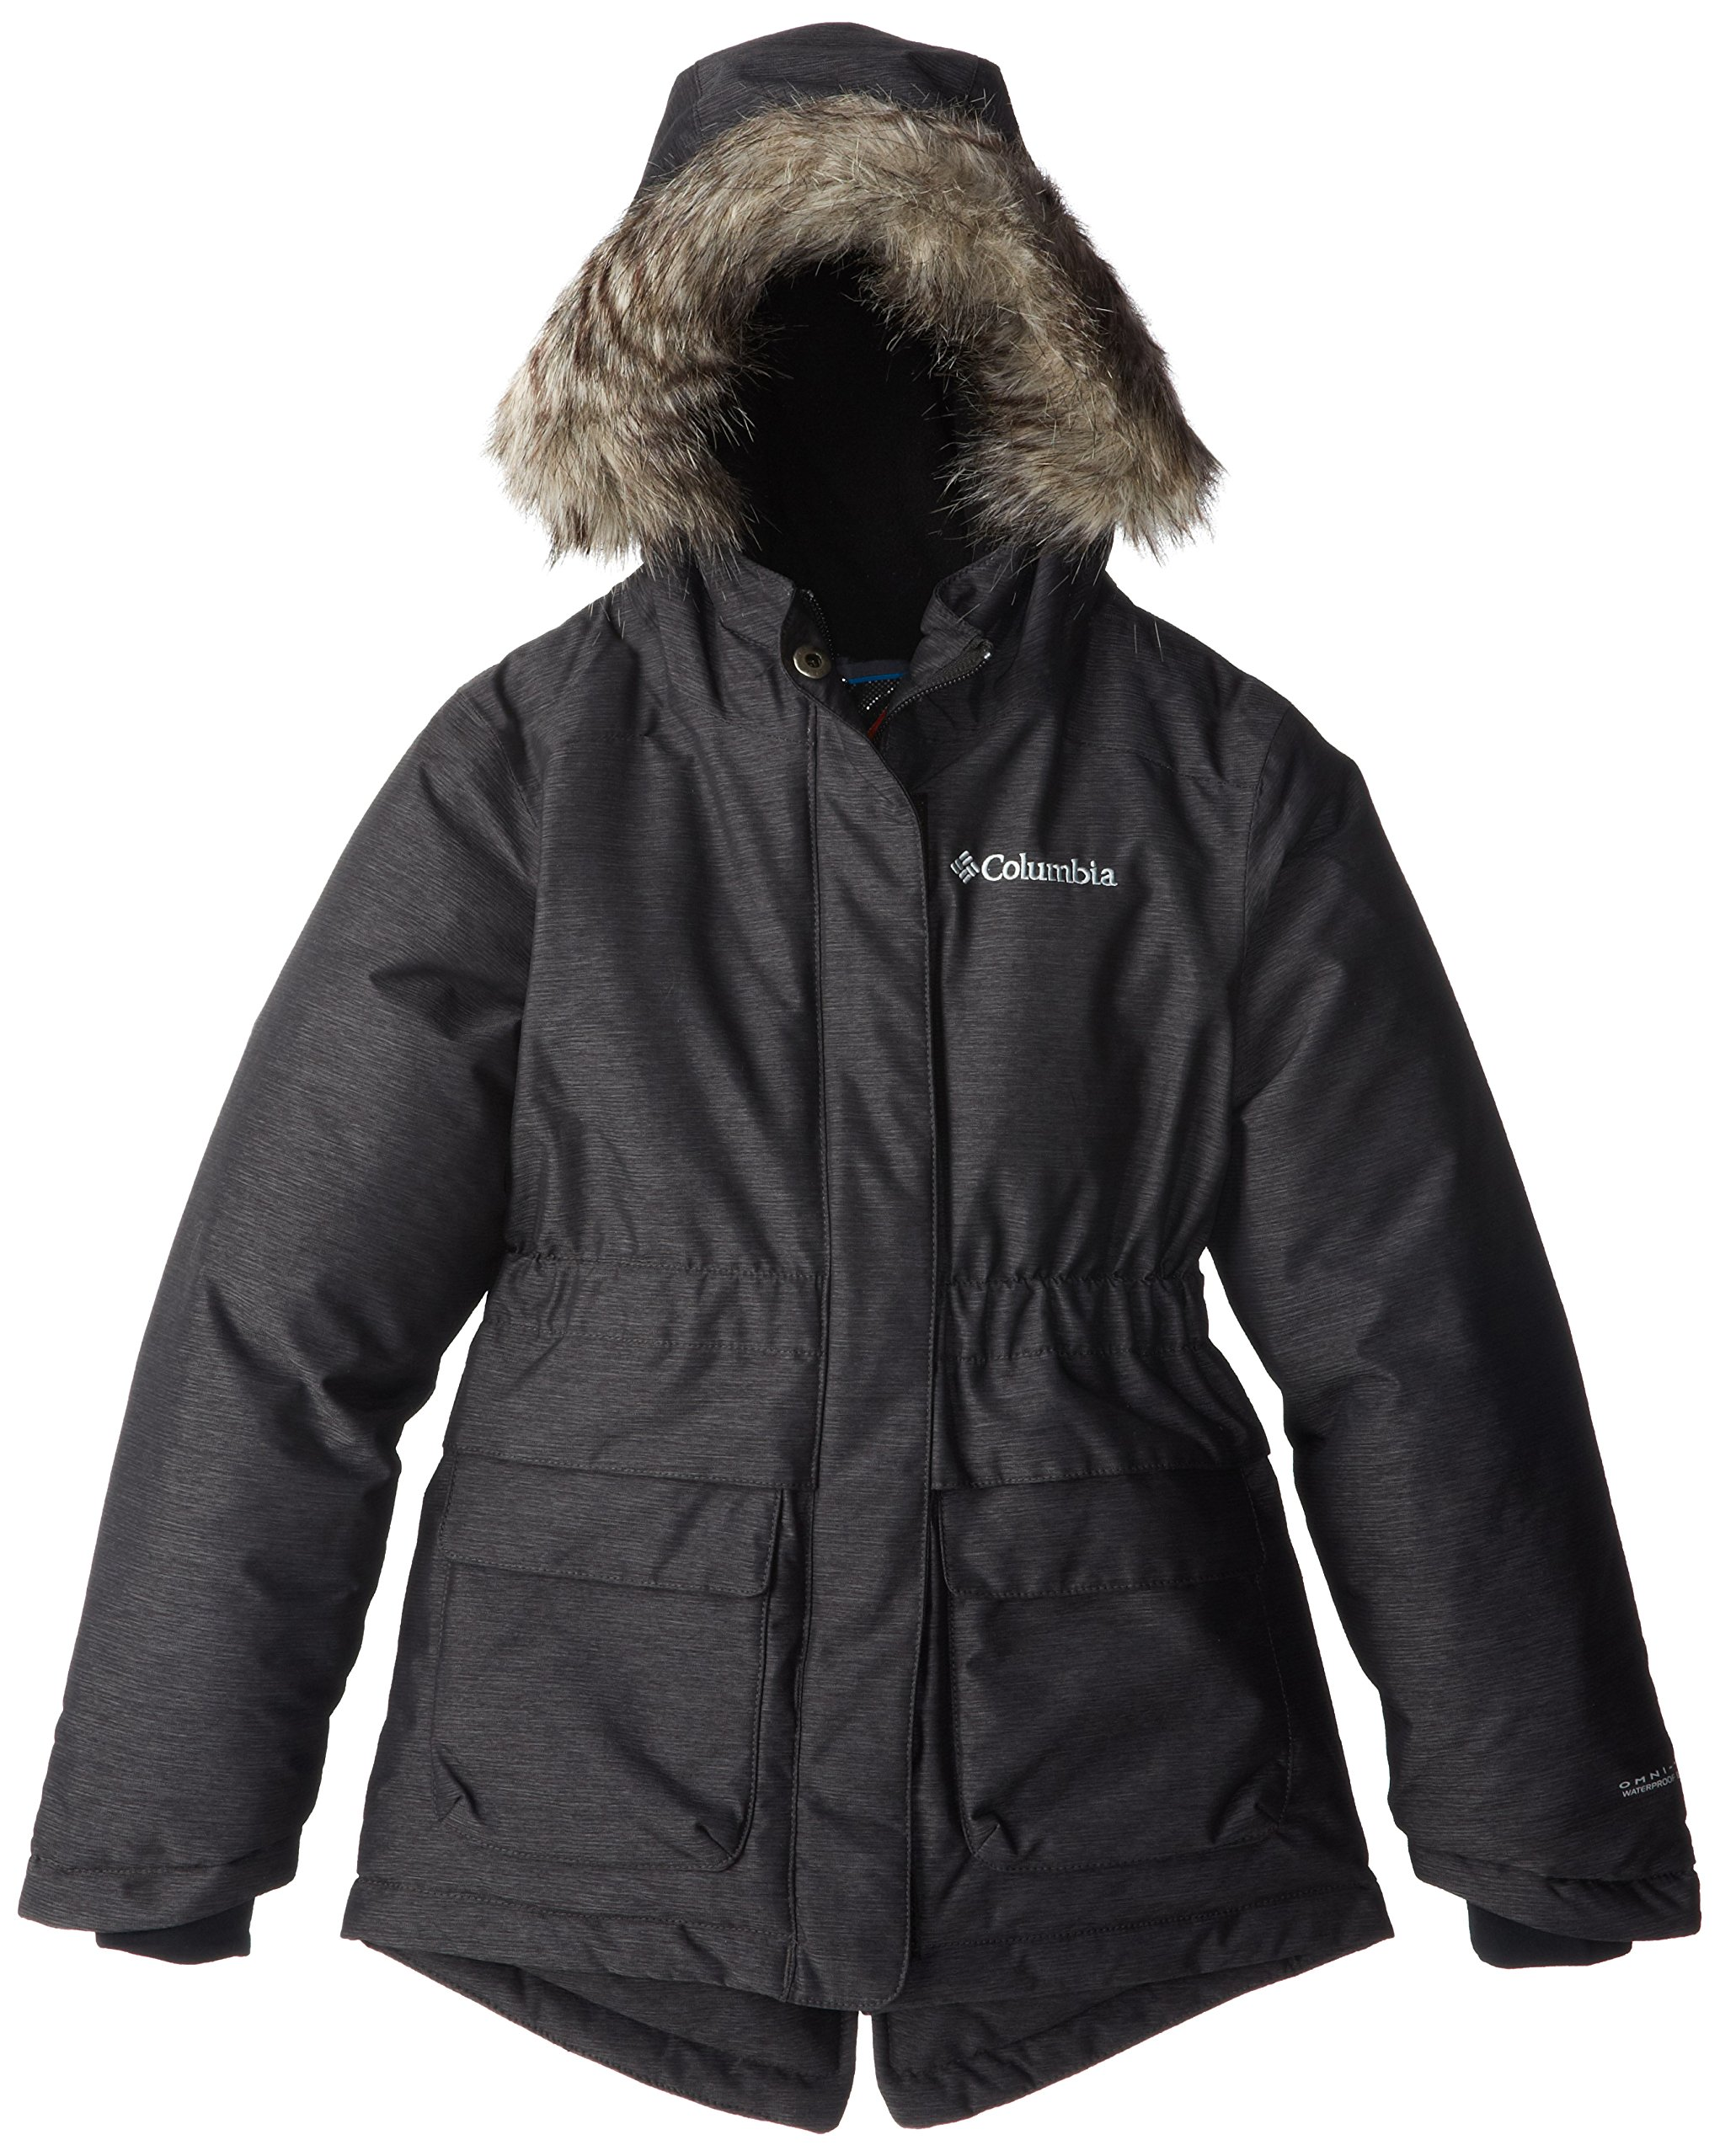 Columbia Youth Girl's Big Nordic Strider Jacket, Black, Medium by Columbia